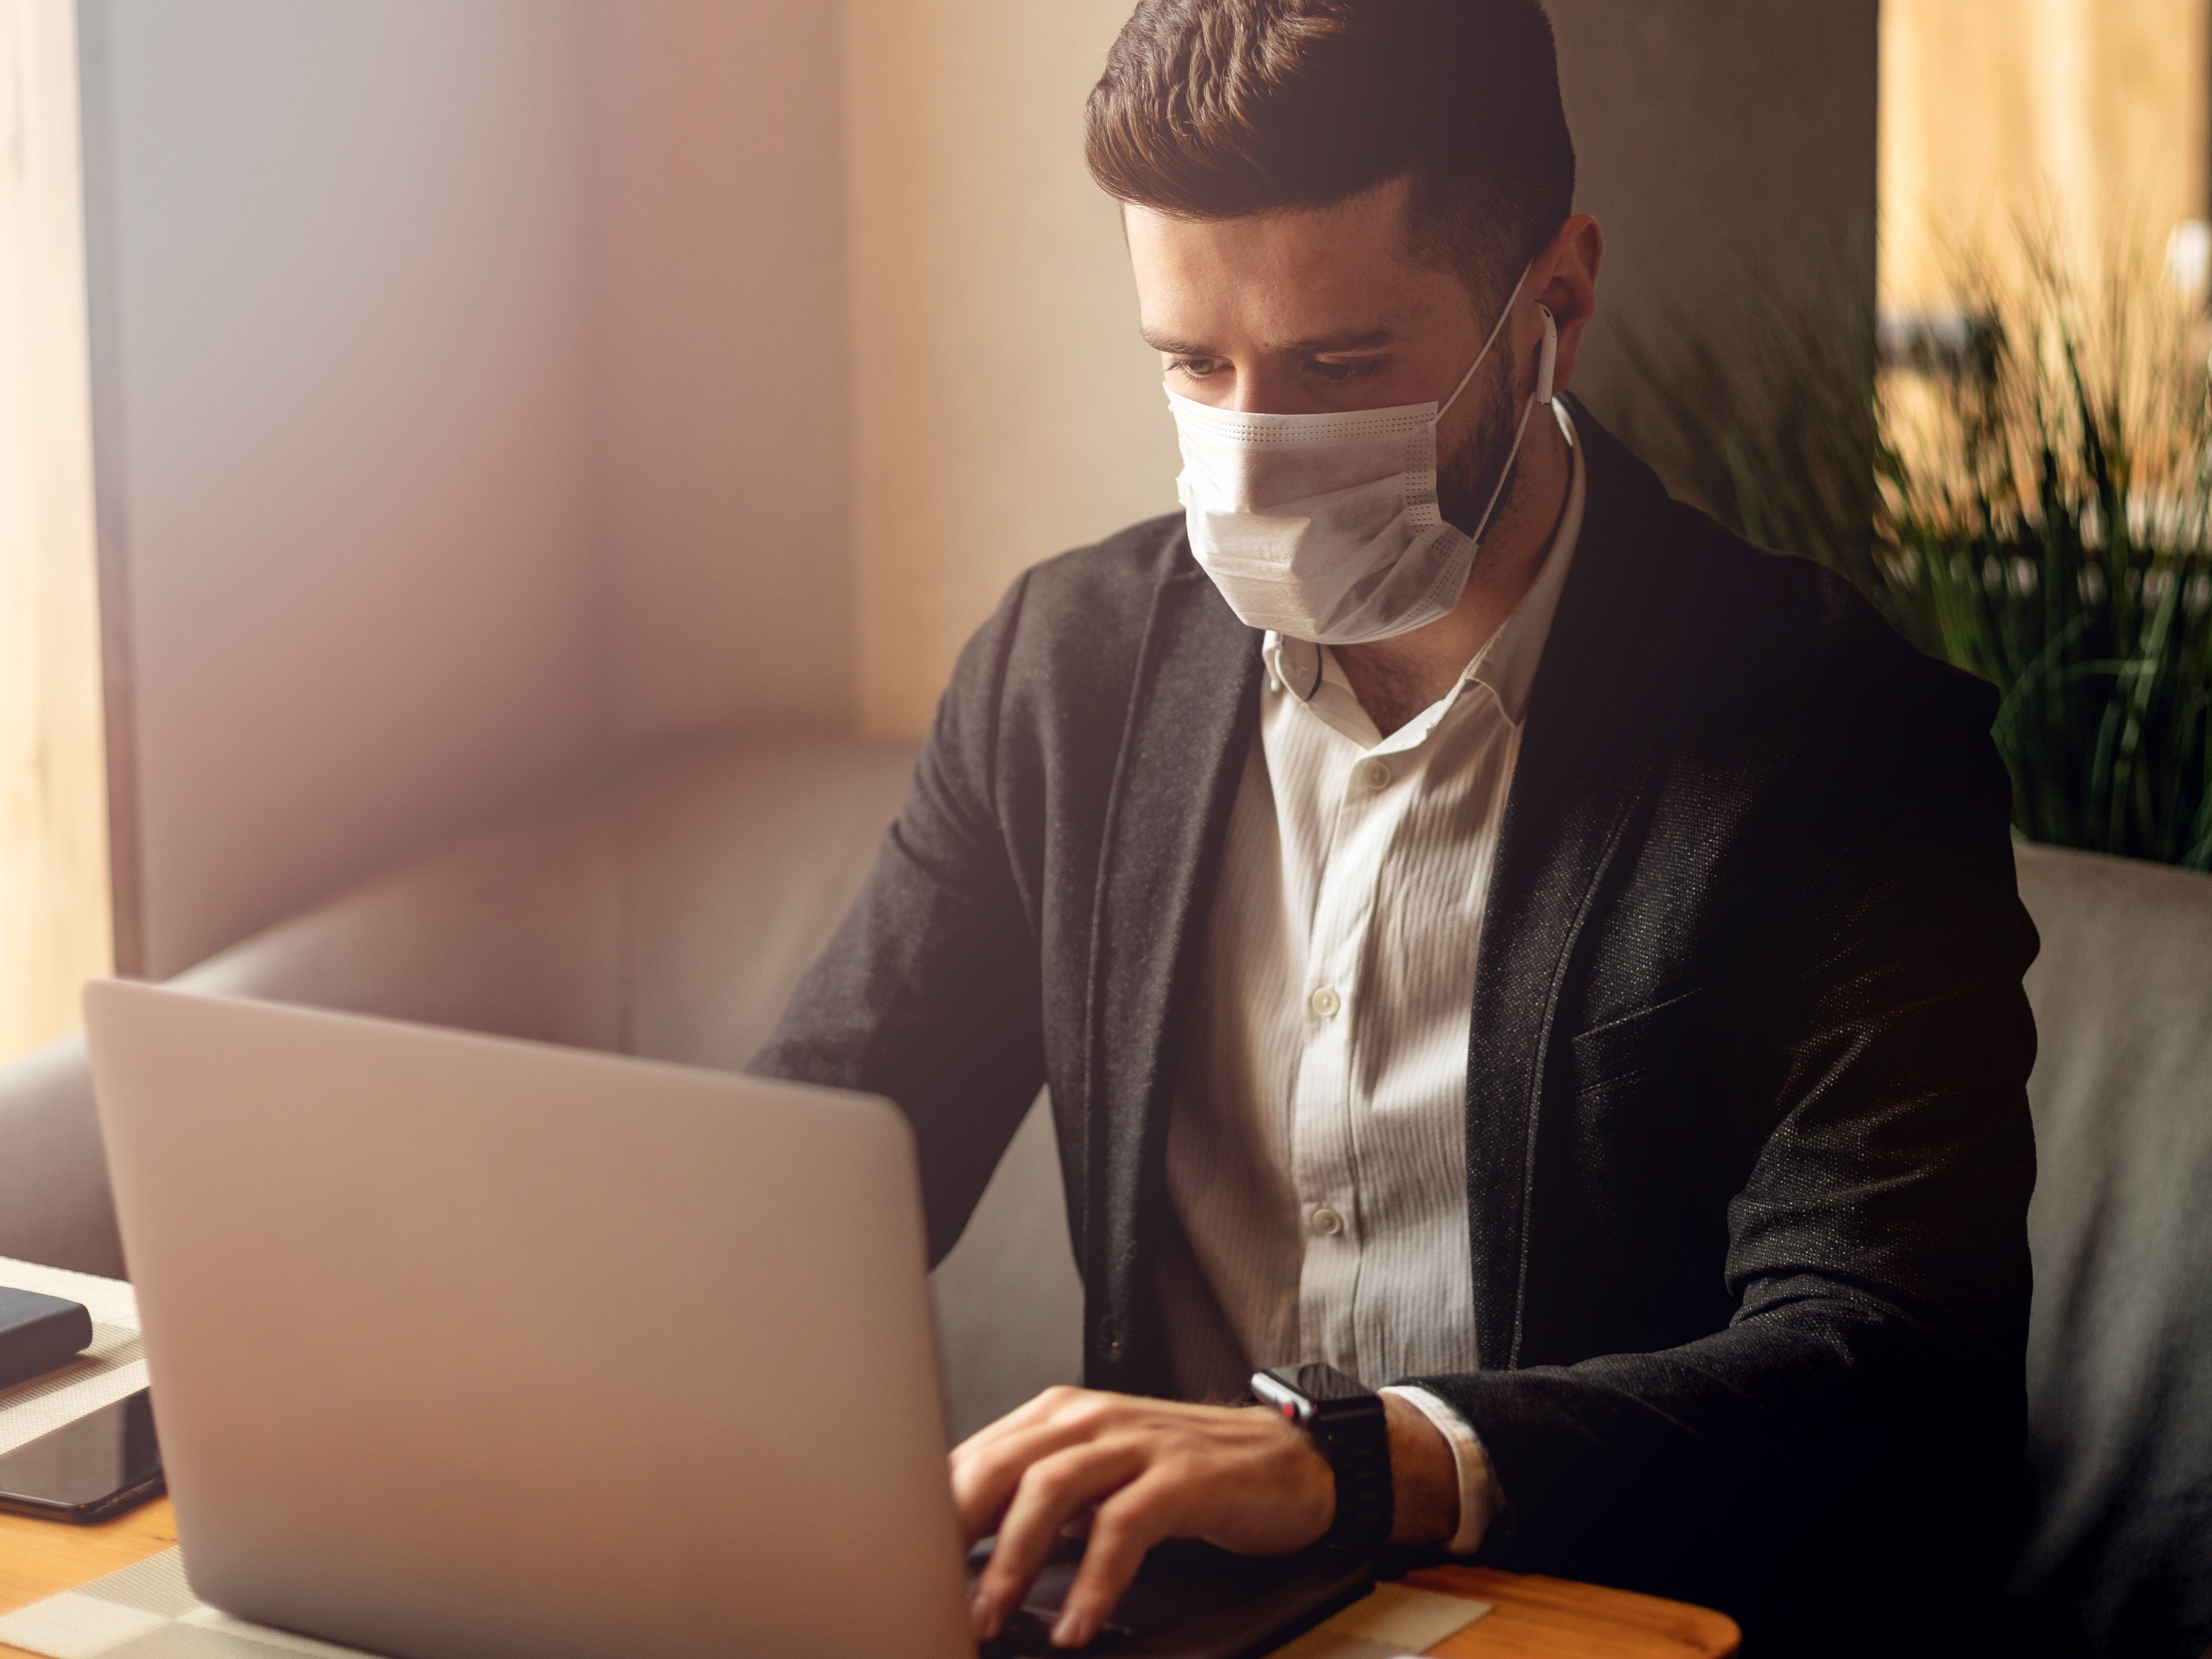 COVID-19 quarantine? 10 things you might finally get done